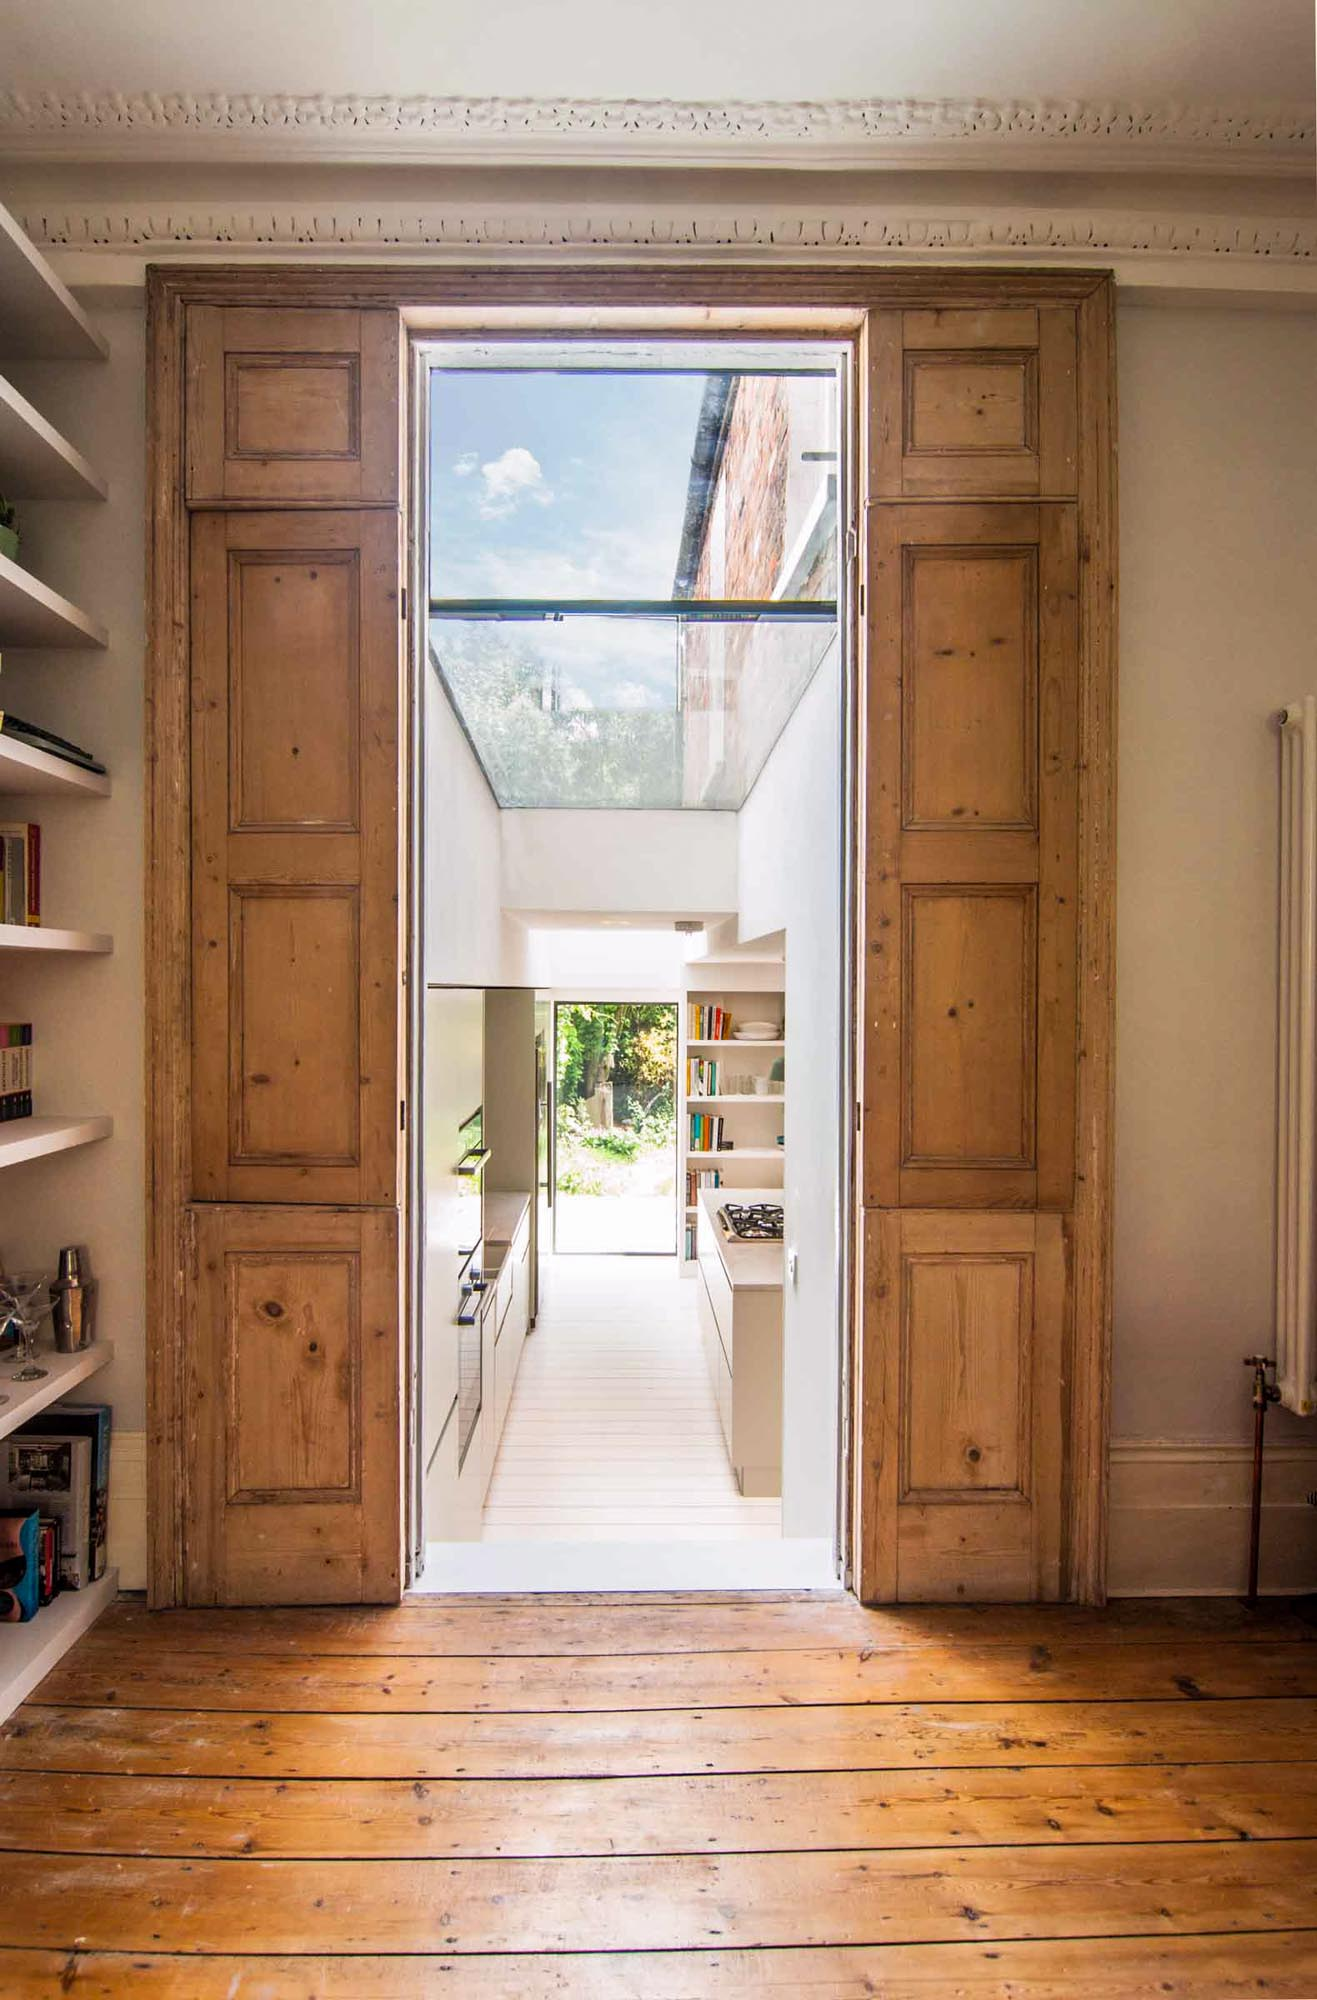 Photographer's House: Rustic door opening to the contrasting new kitchen extension.